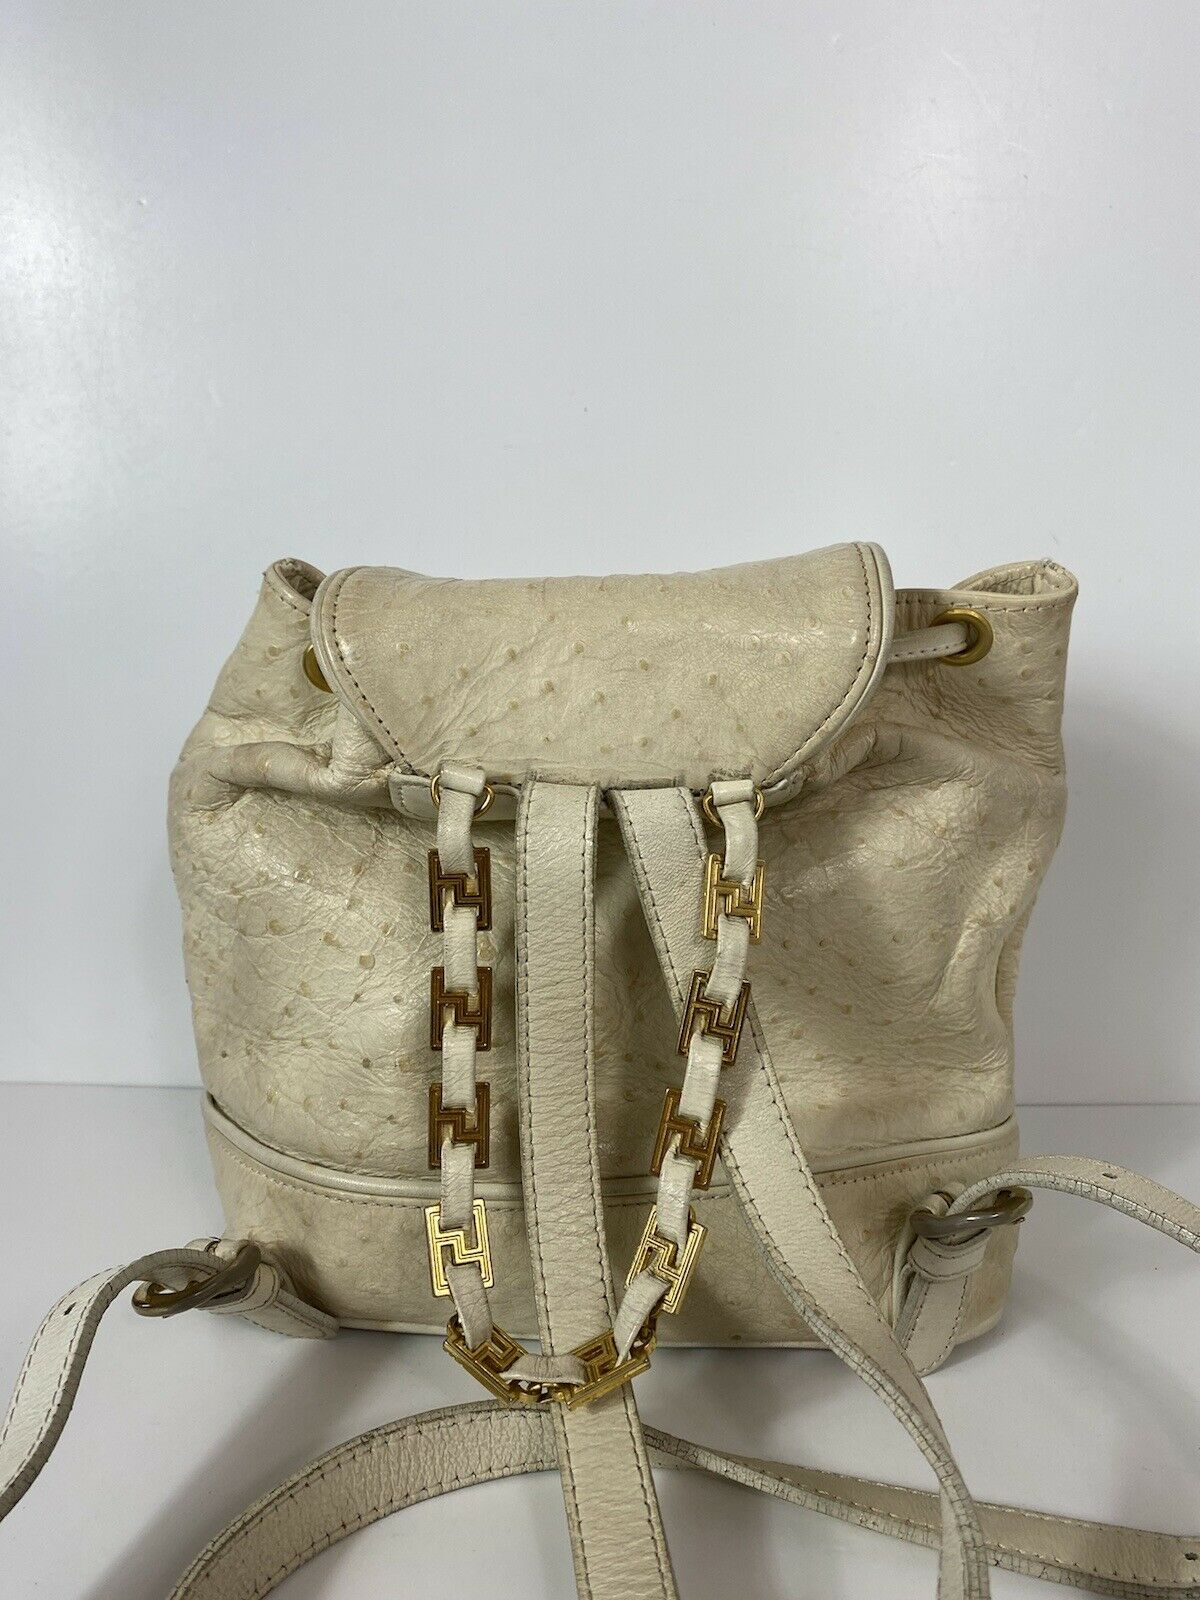 RARE VTG GIANNI VERSACE 90S WHITE OSTRICH BACKPACK - image 5